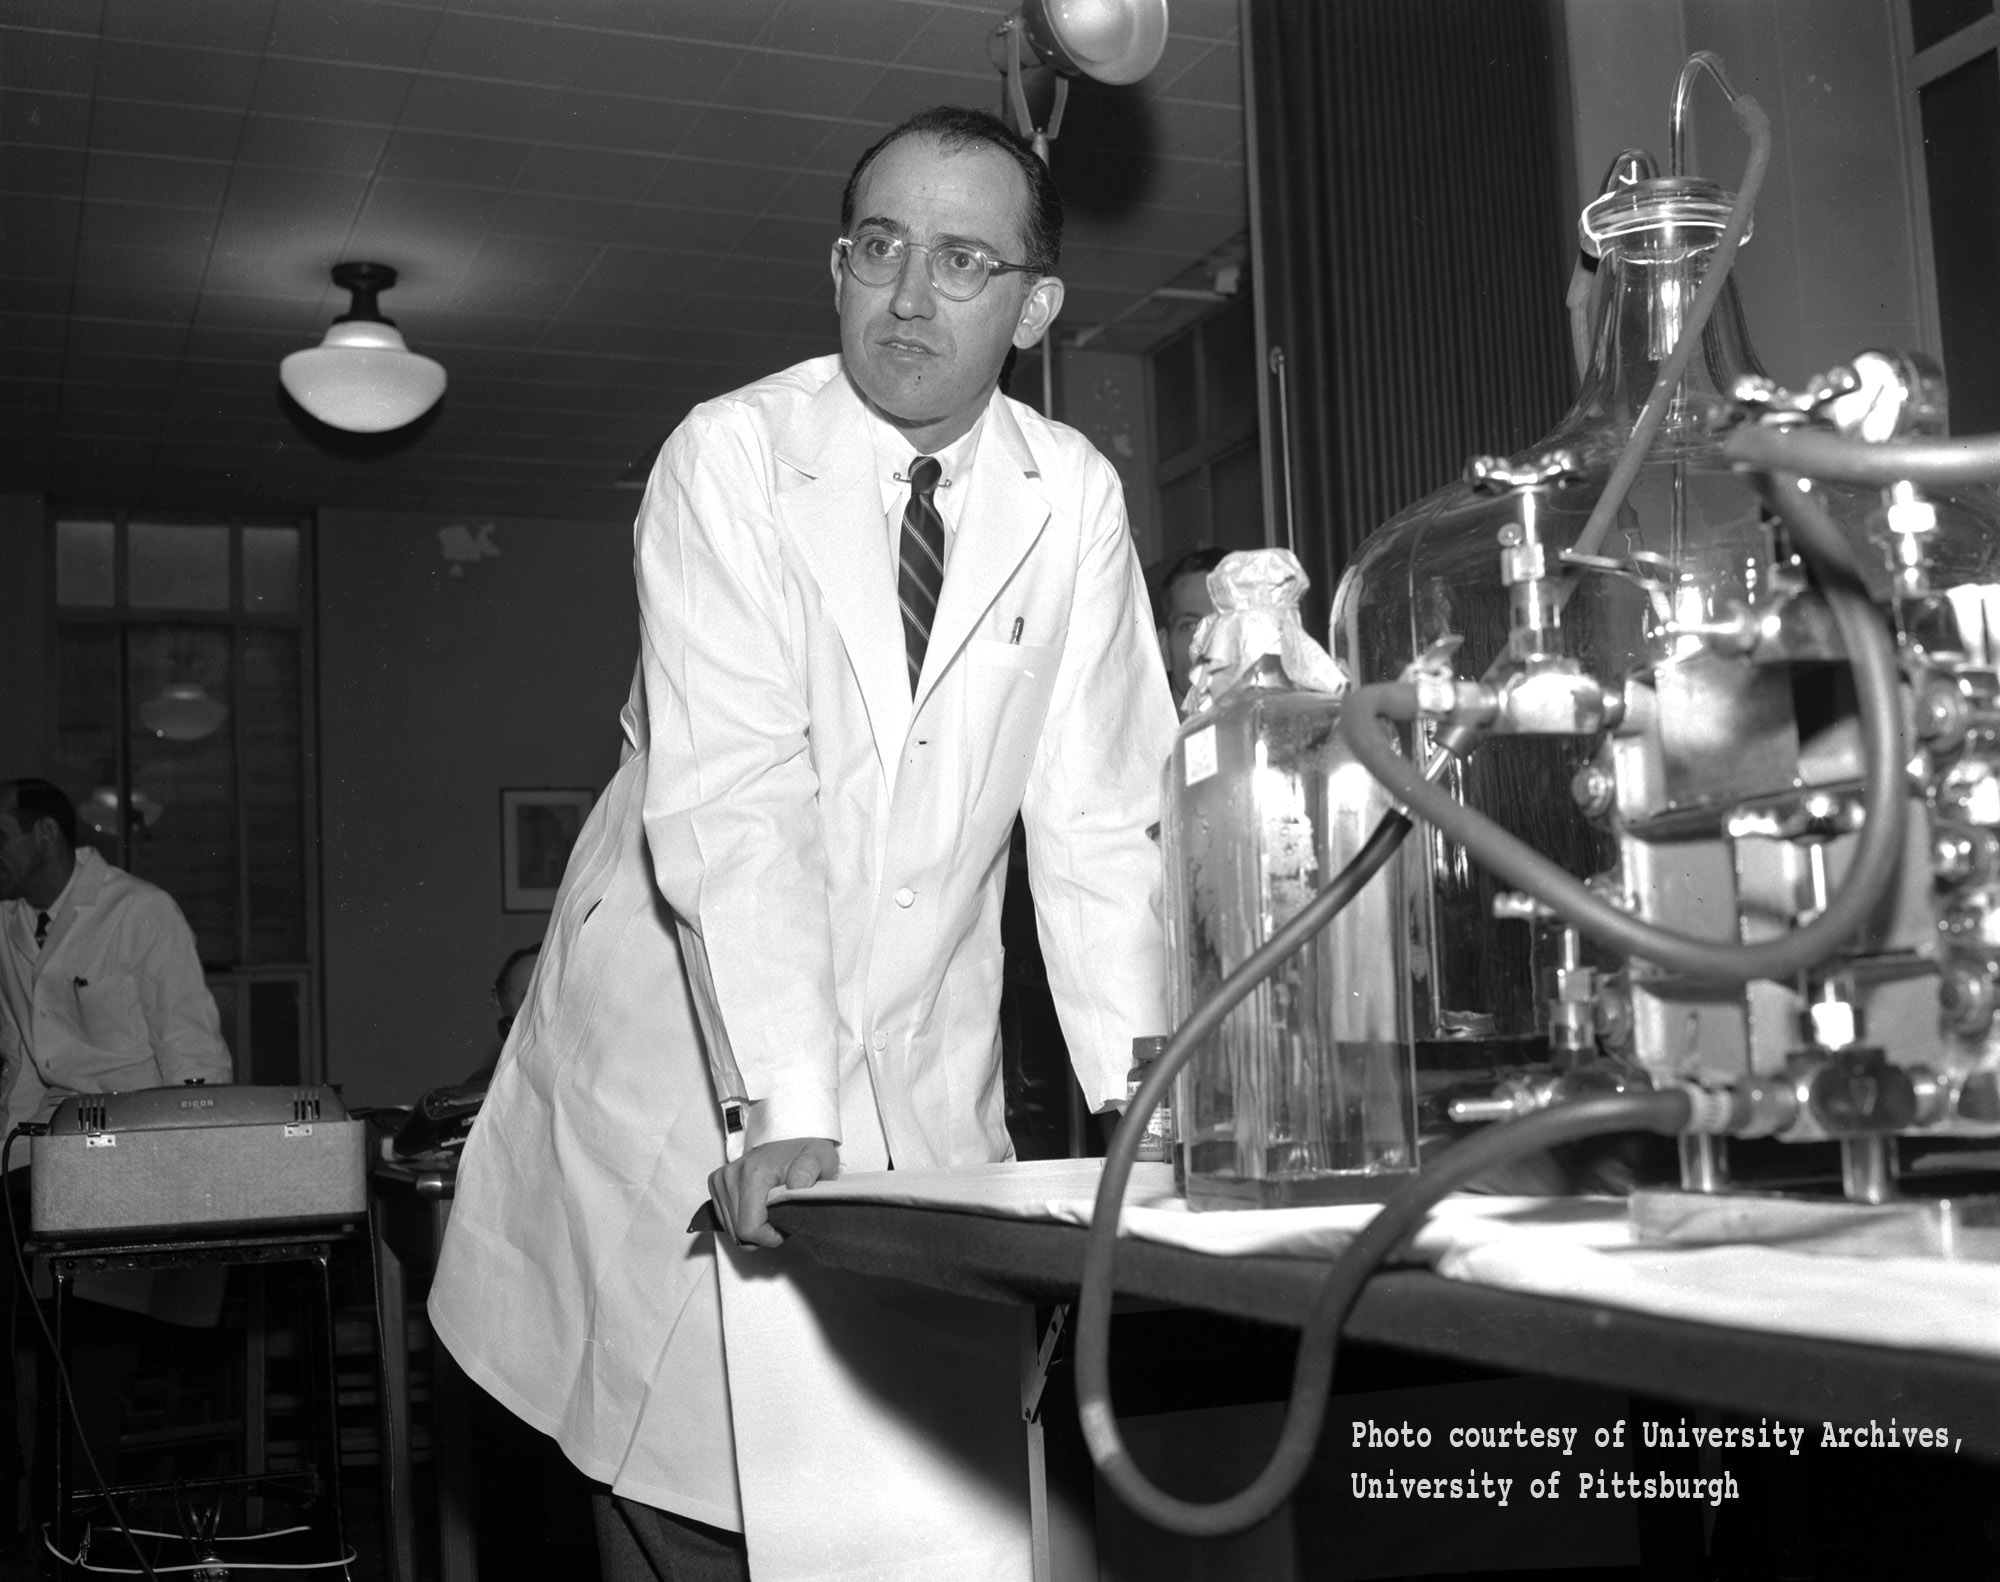 a biography jonas salk the man who invented the vaccine against the polio virus The film profiles dr hilary koprowski, an american scientist racing dr albert sabin and dr jonas salk to create the polio vaccine, primarily in the 1950s koprowski tested his oral vaccine.